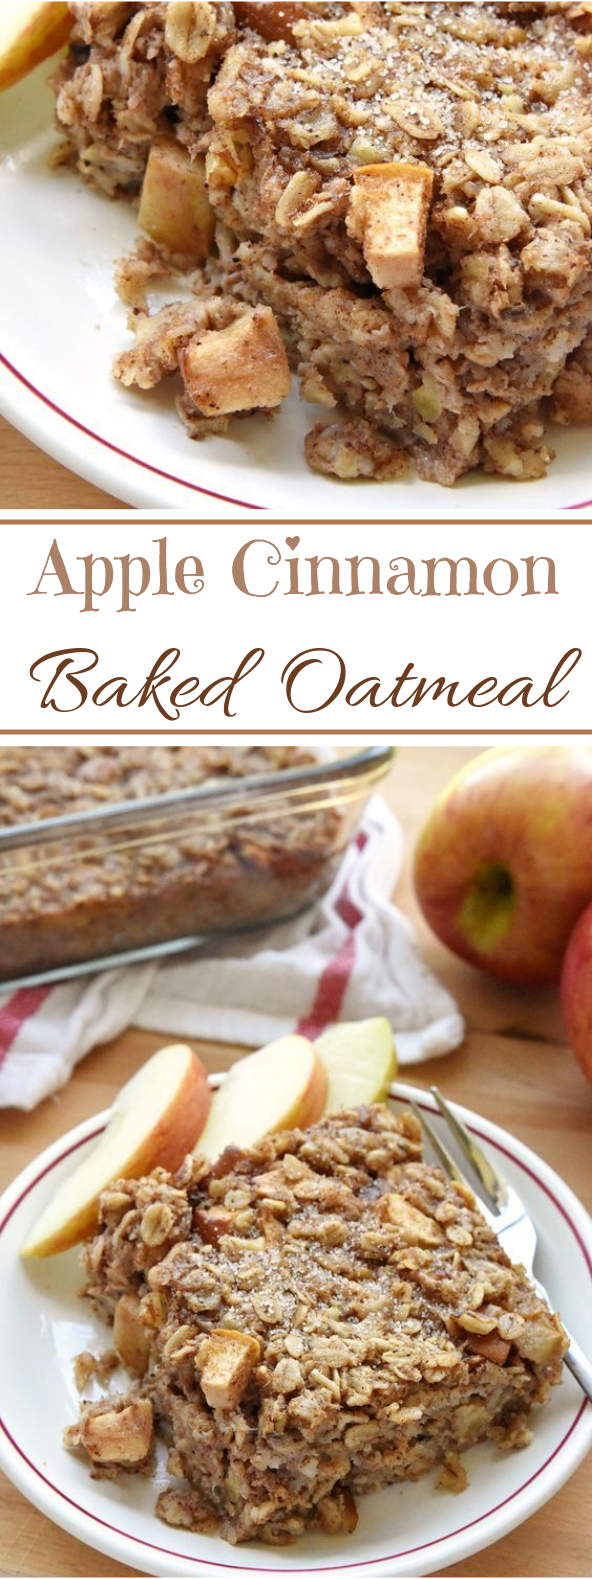 Apple Cinnamon Baked Oatmeal #breakfast #healthy